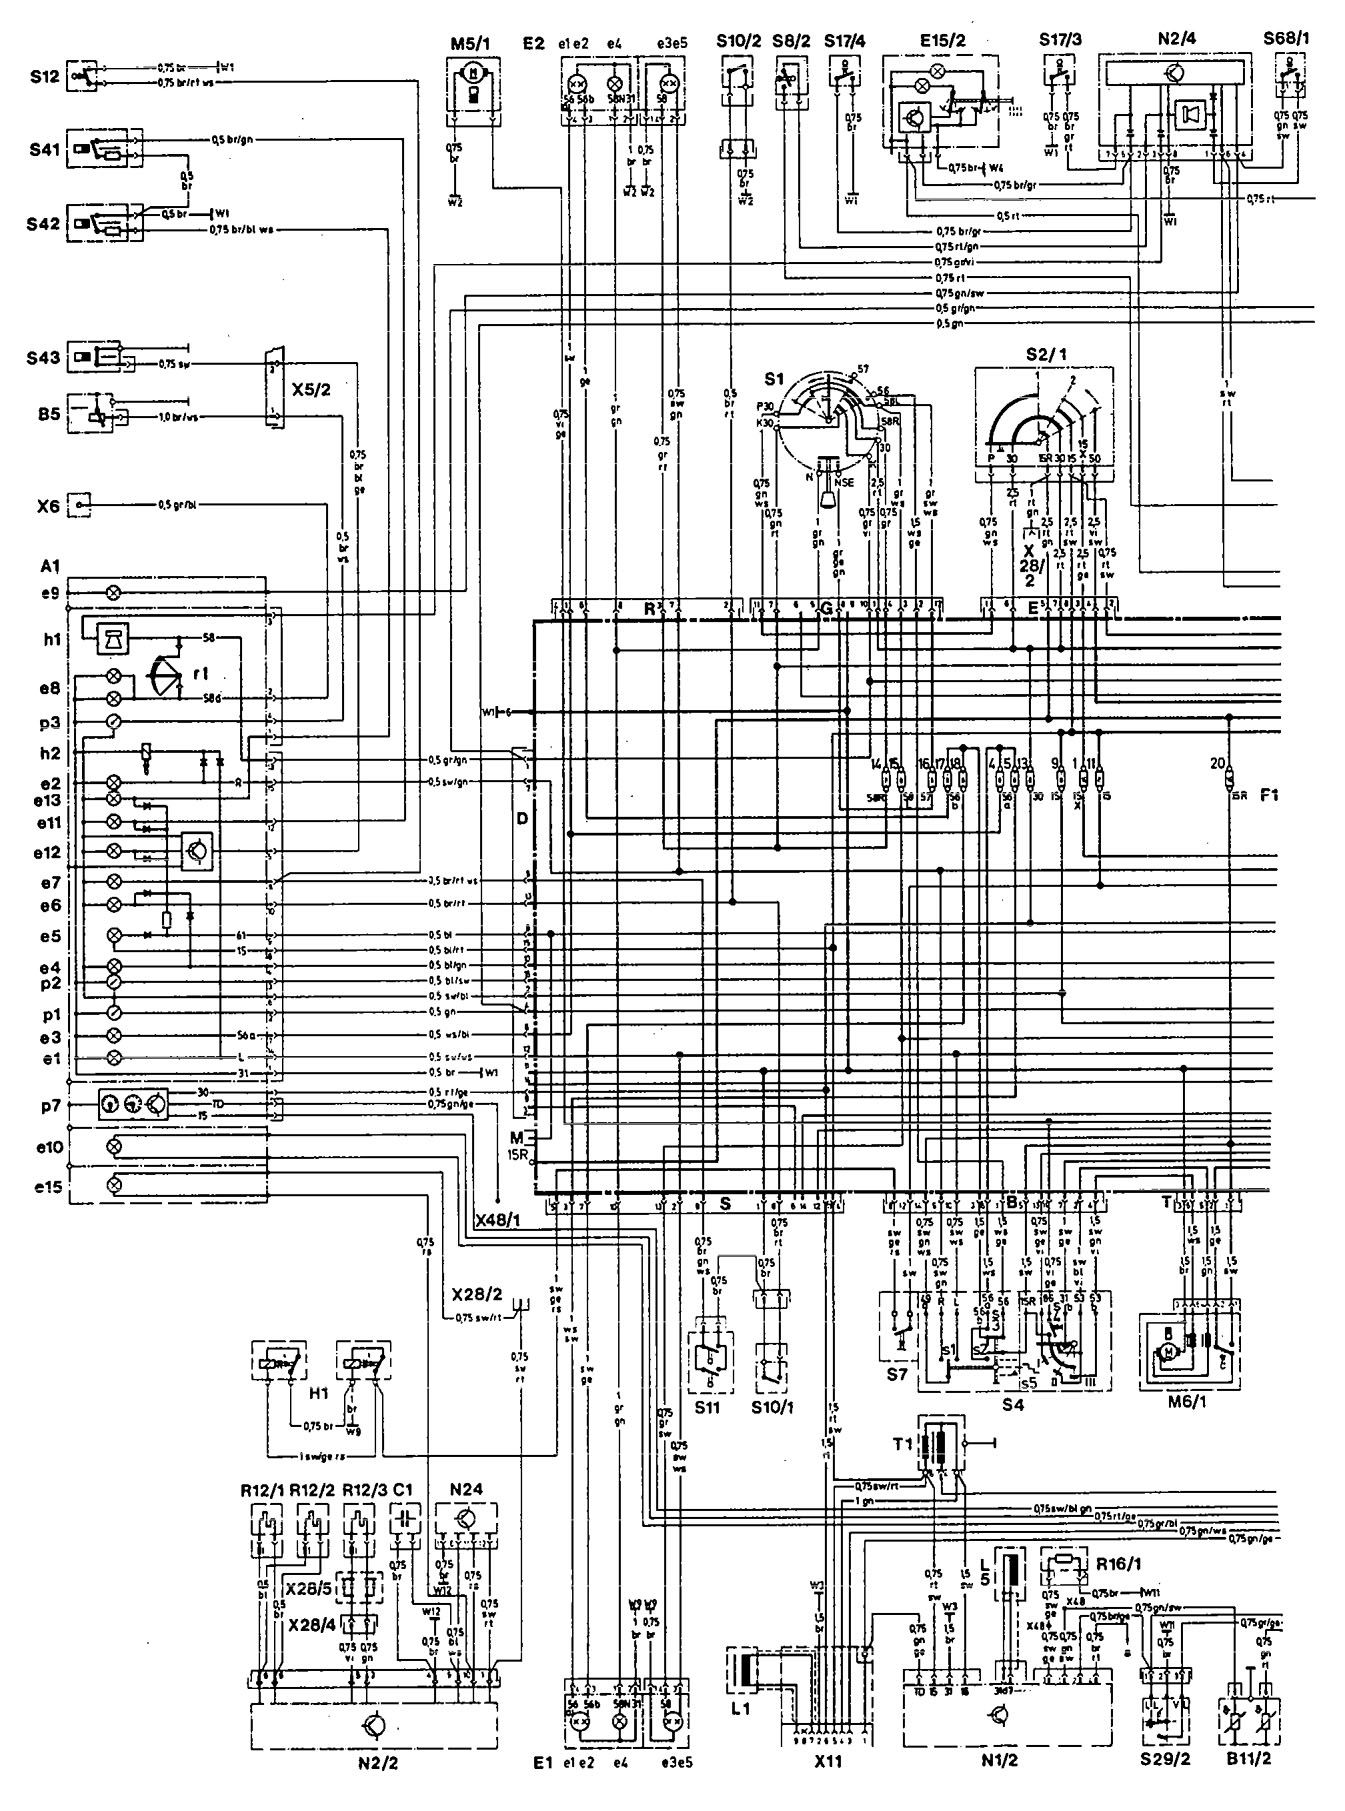 Mercedes 190E 1993 wiring diagrams instrumentation CARKNOWLEDGE